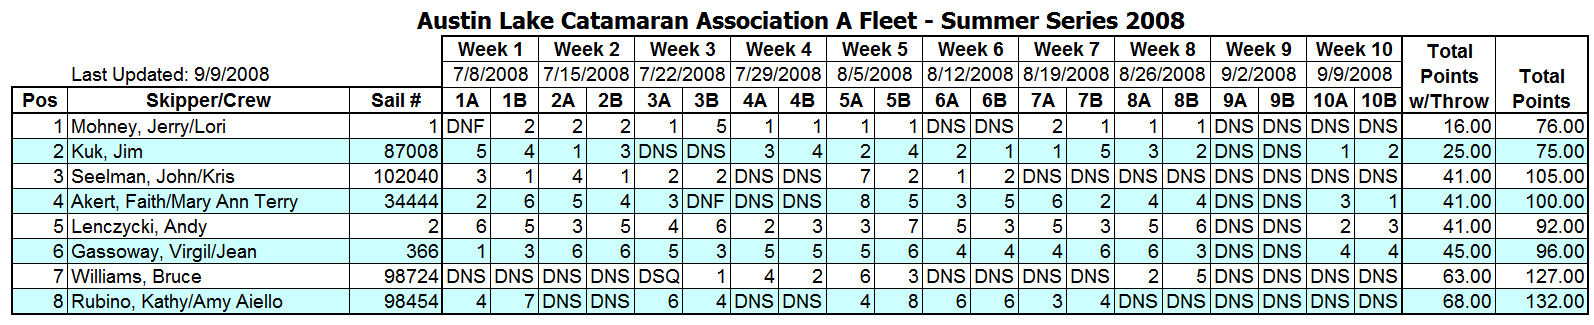 2008 Summer Portsmouth A Fleet Results